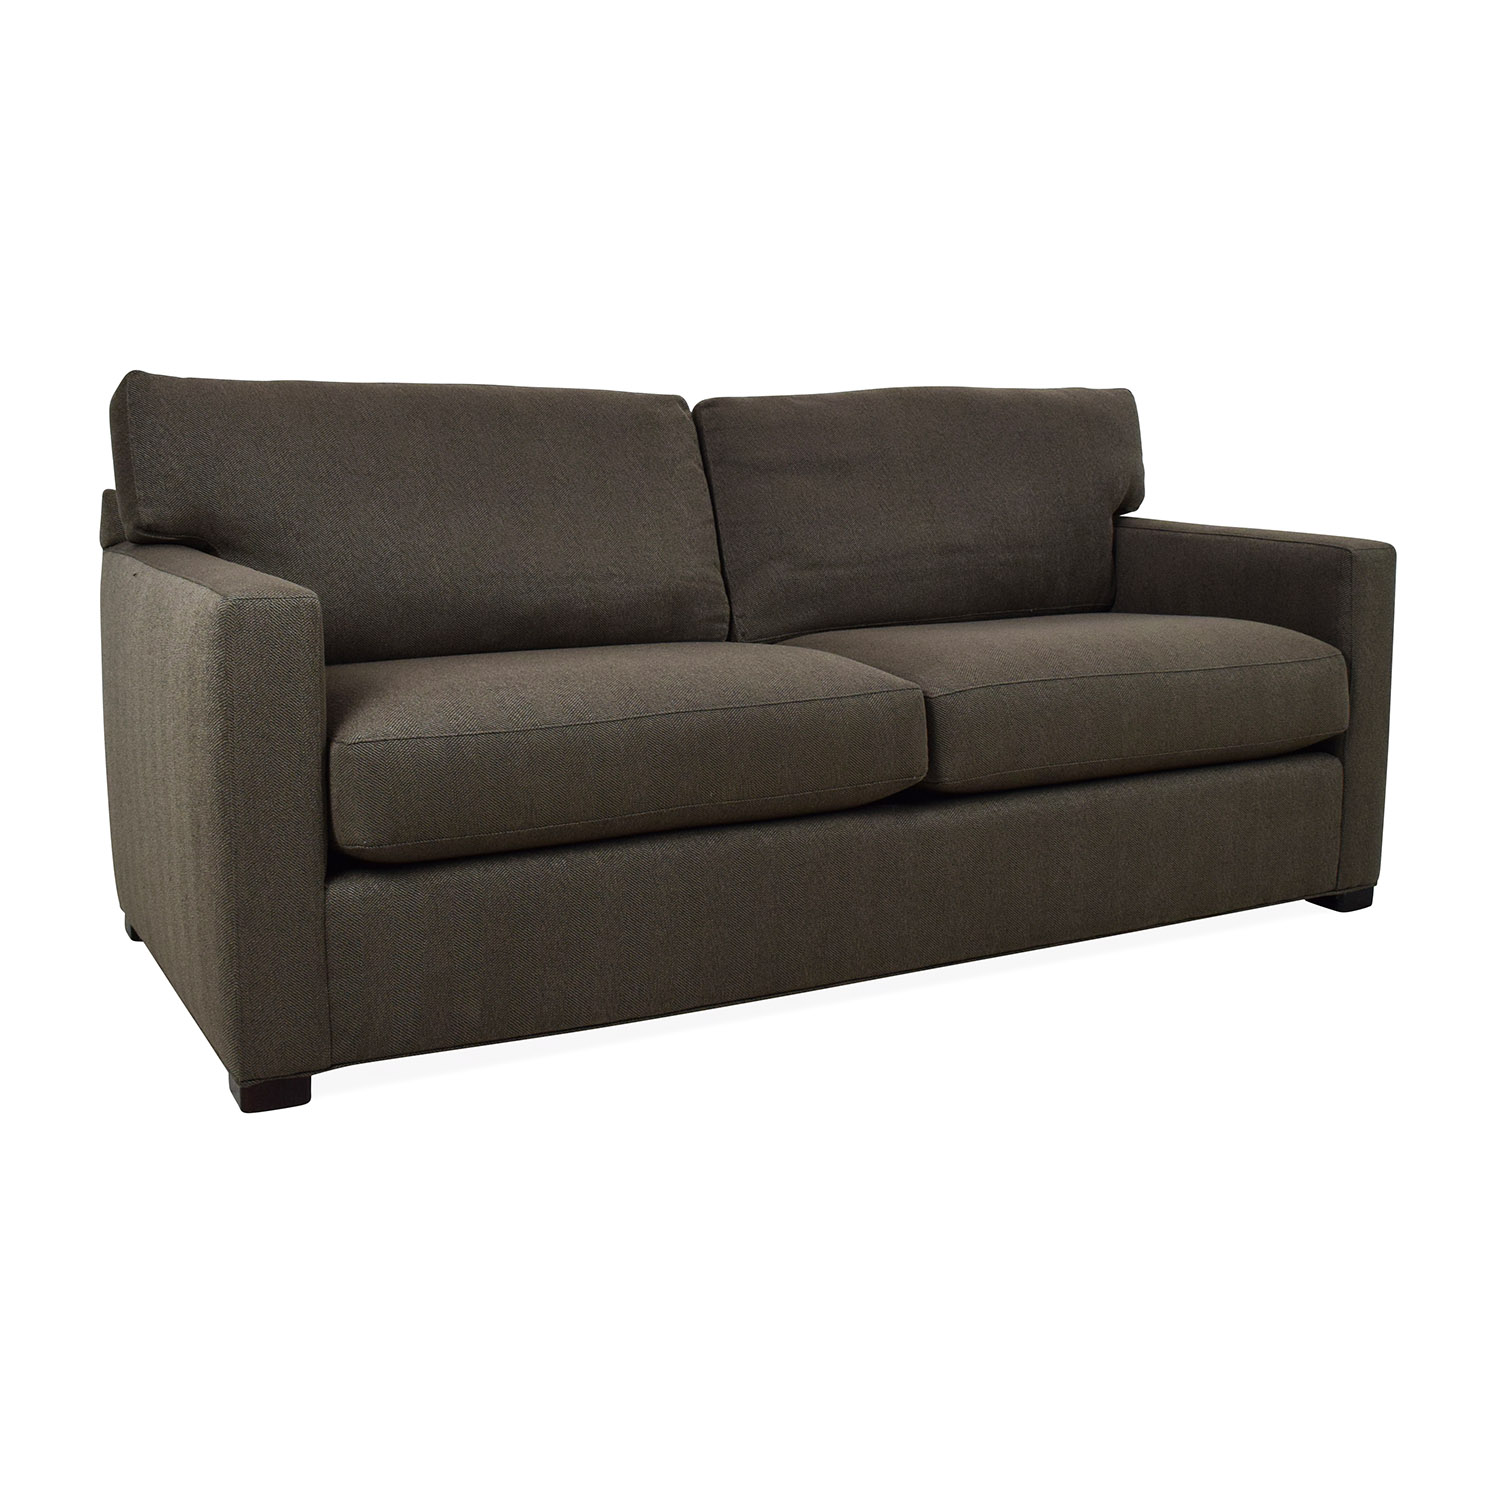 68 off room and board room board classic sofa sofas for Classic loveseat